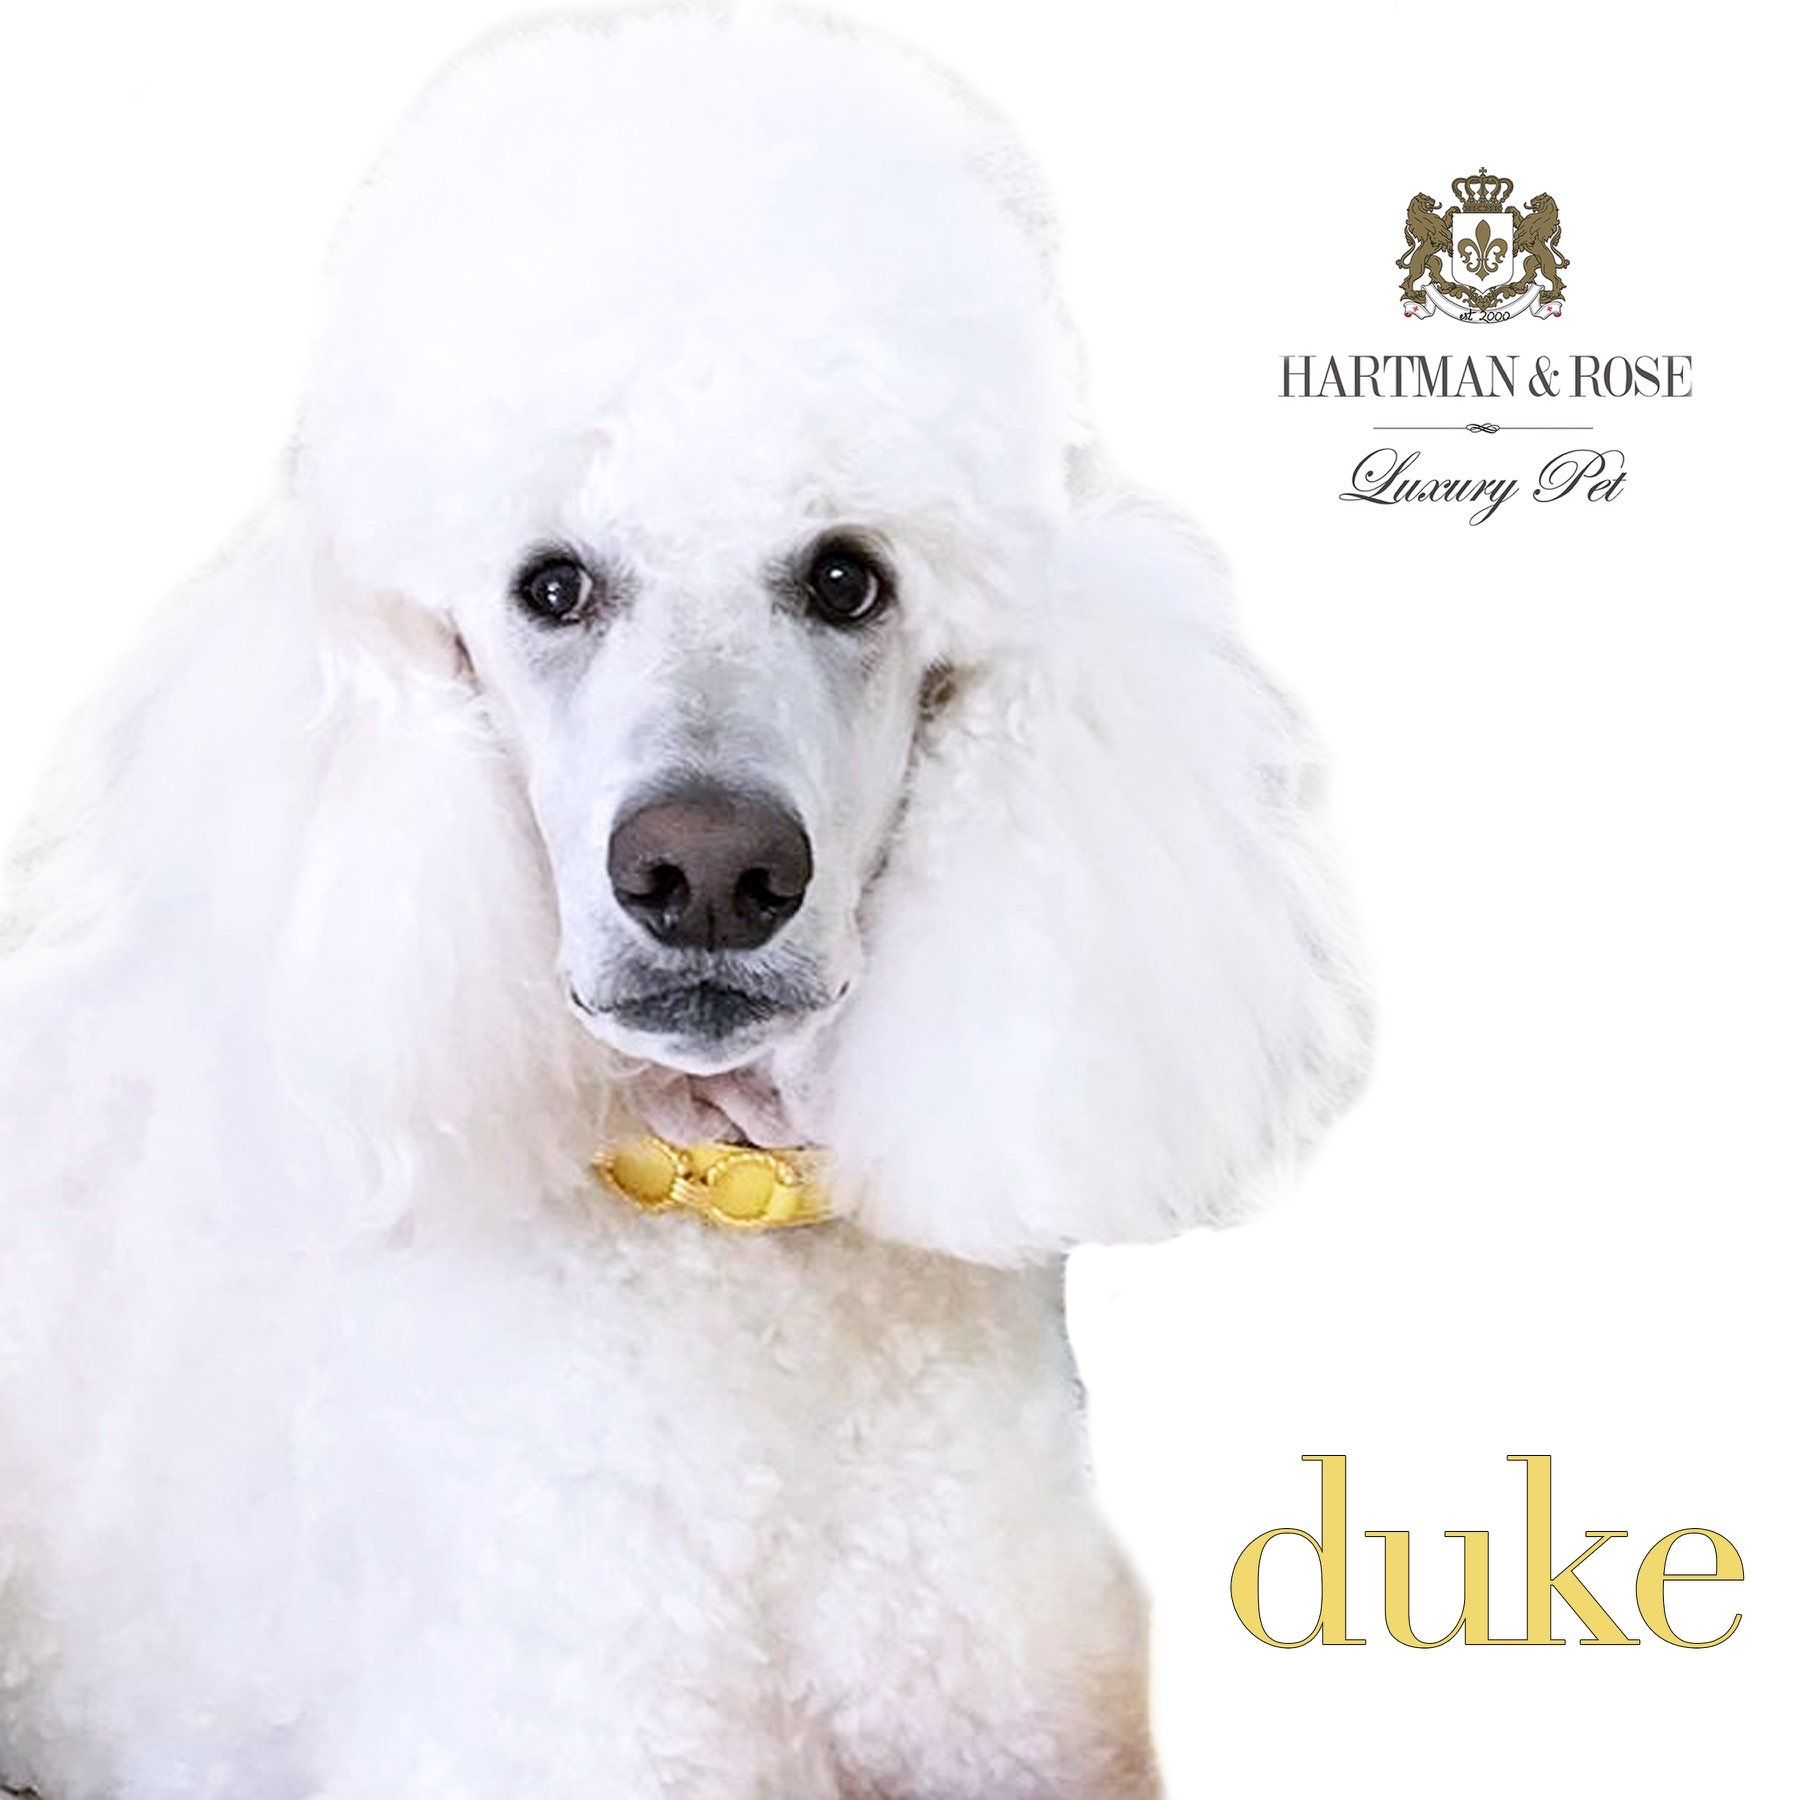 Hartman & Rose Luxury Pet Goods SAVE 40% on your next purchase use code: THANKSGIVING www.hartmanandrose.com This handsome devil is Duke from Sydney, Australia wearing the Athena collar in Canary Yellow. @duke_thepoodle @hartmanandrose #hartmanandrose Exceptions apply